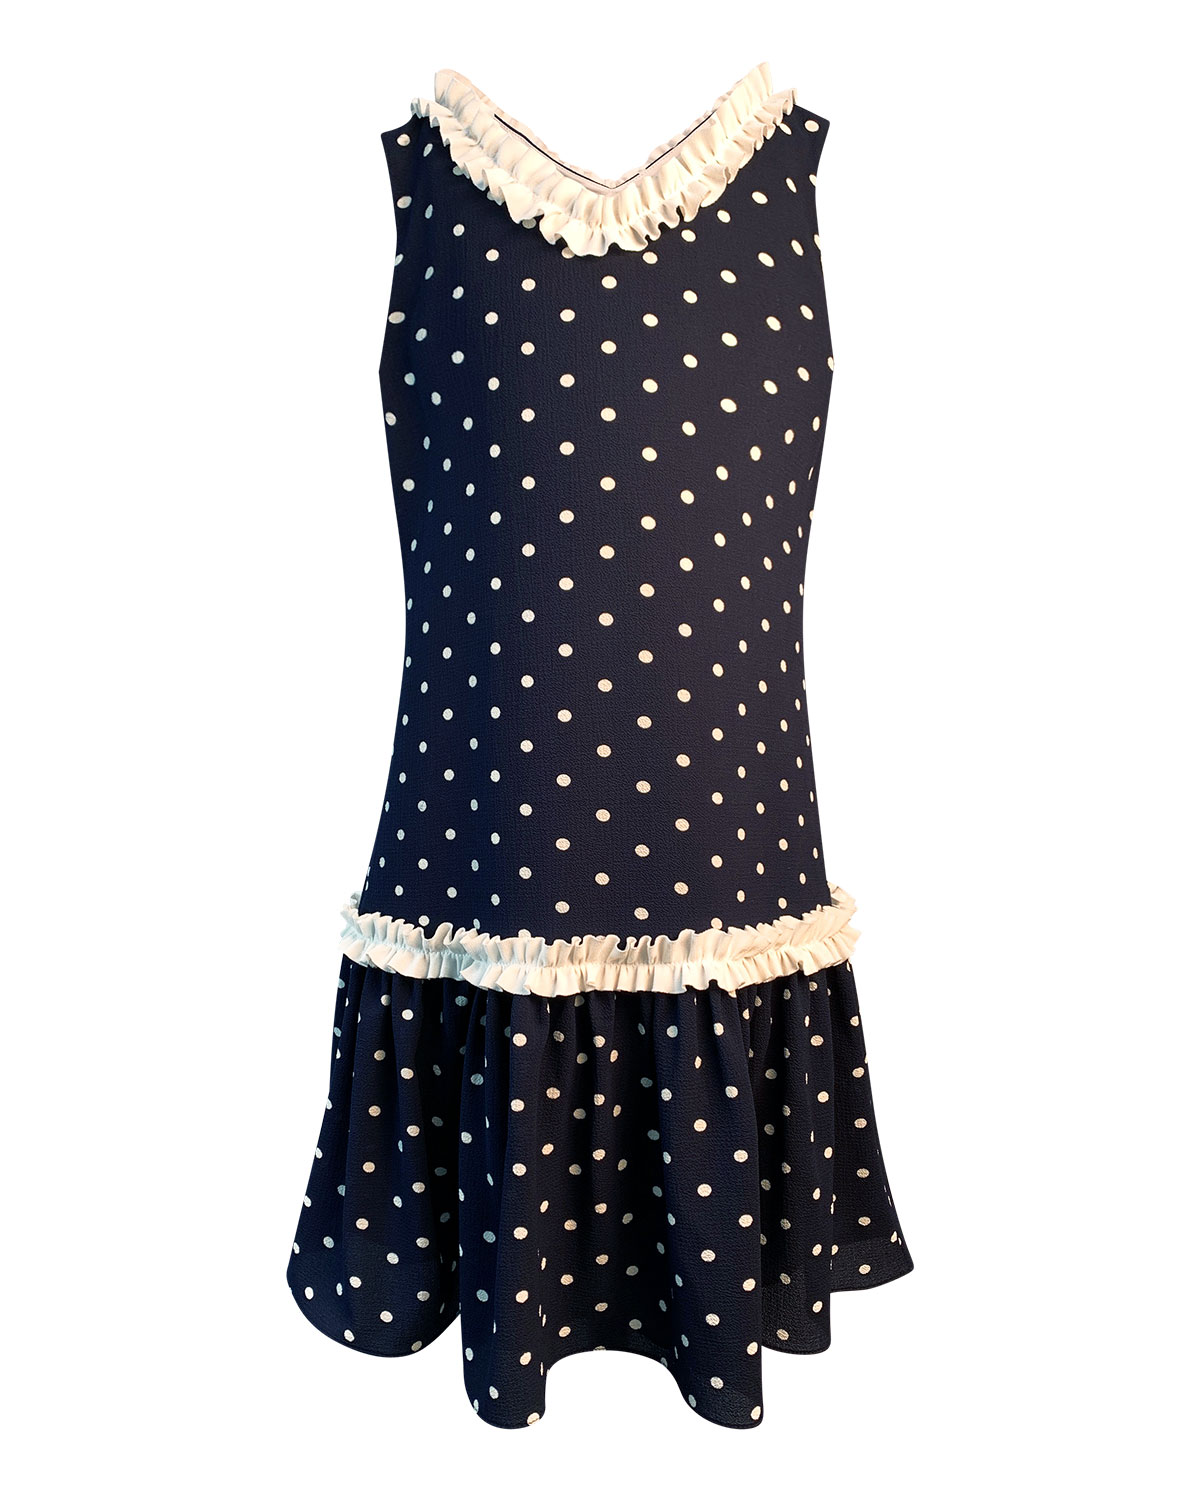 Helena Girl's Polka-Dot Ruffle-Trim Sleeveless Dress, Size 7-14